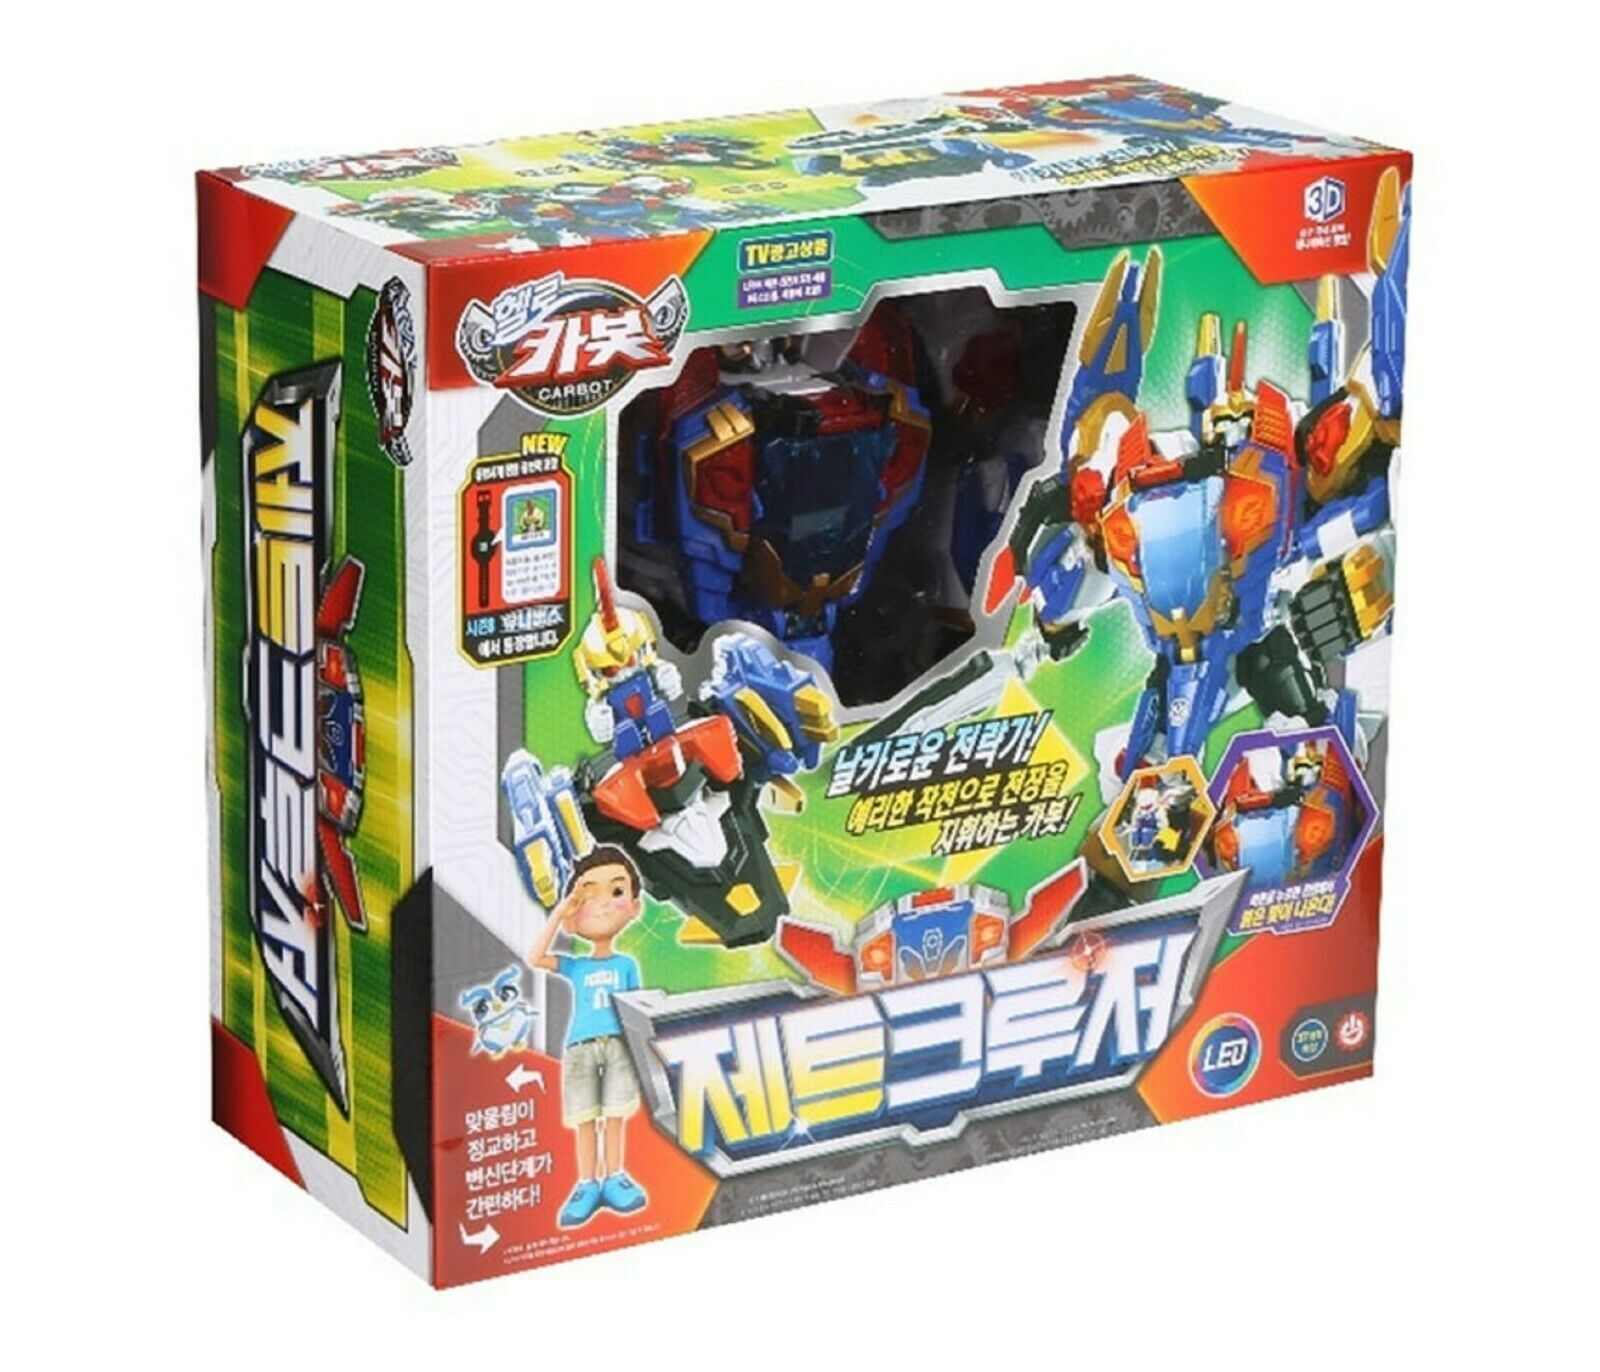 Hello Carbot Jet Cruiser Transformation Action Figure Robot Toy